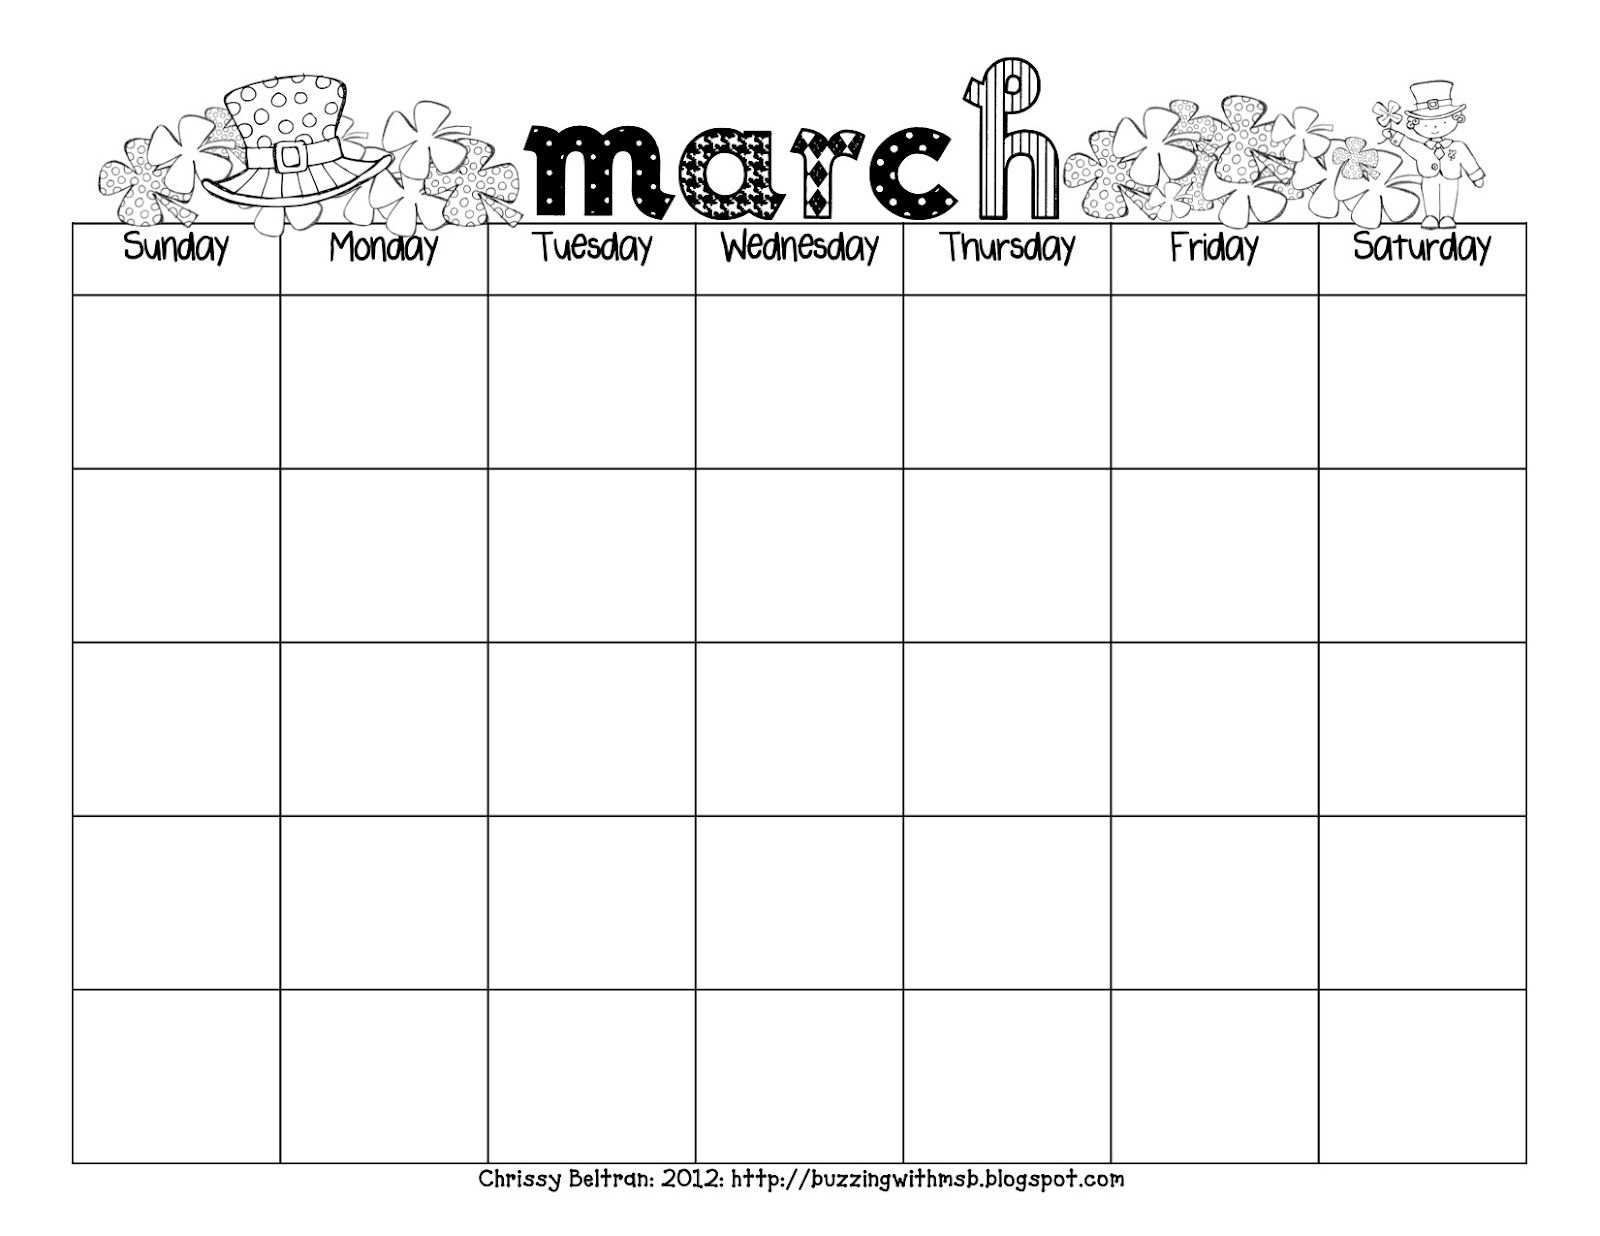 Carson Dellosa Printable Calendars | Want A March Calendar? Grab It